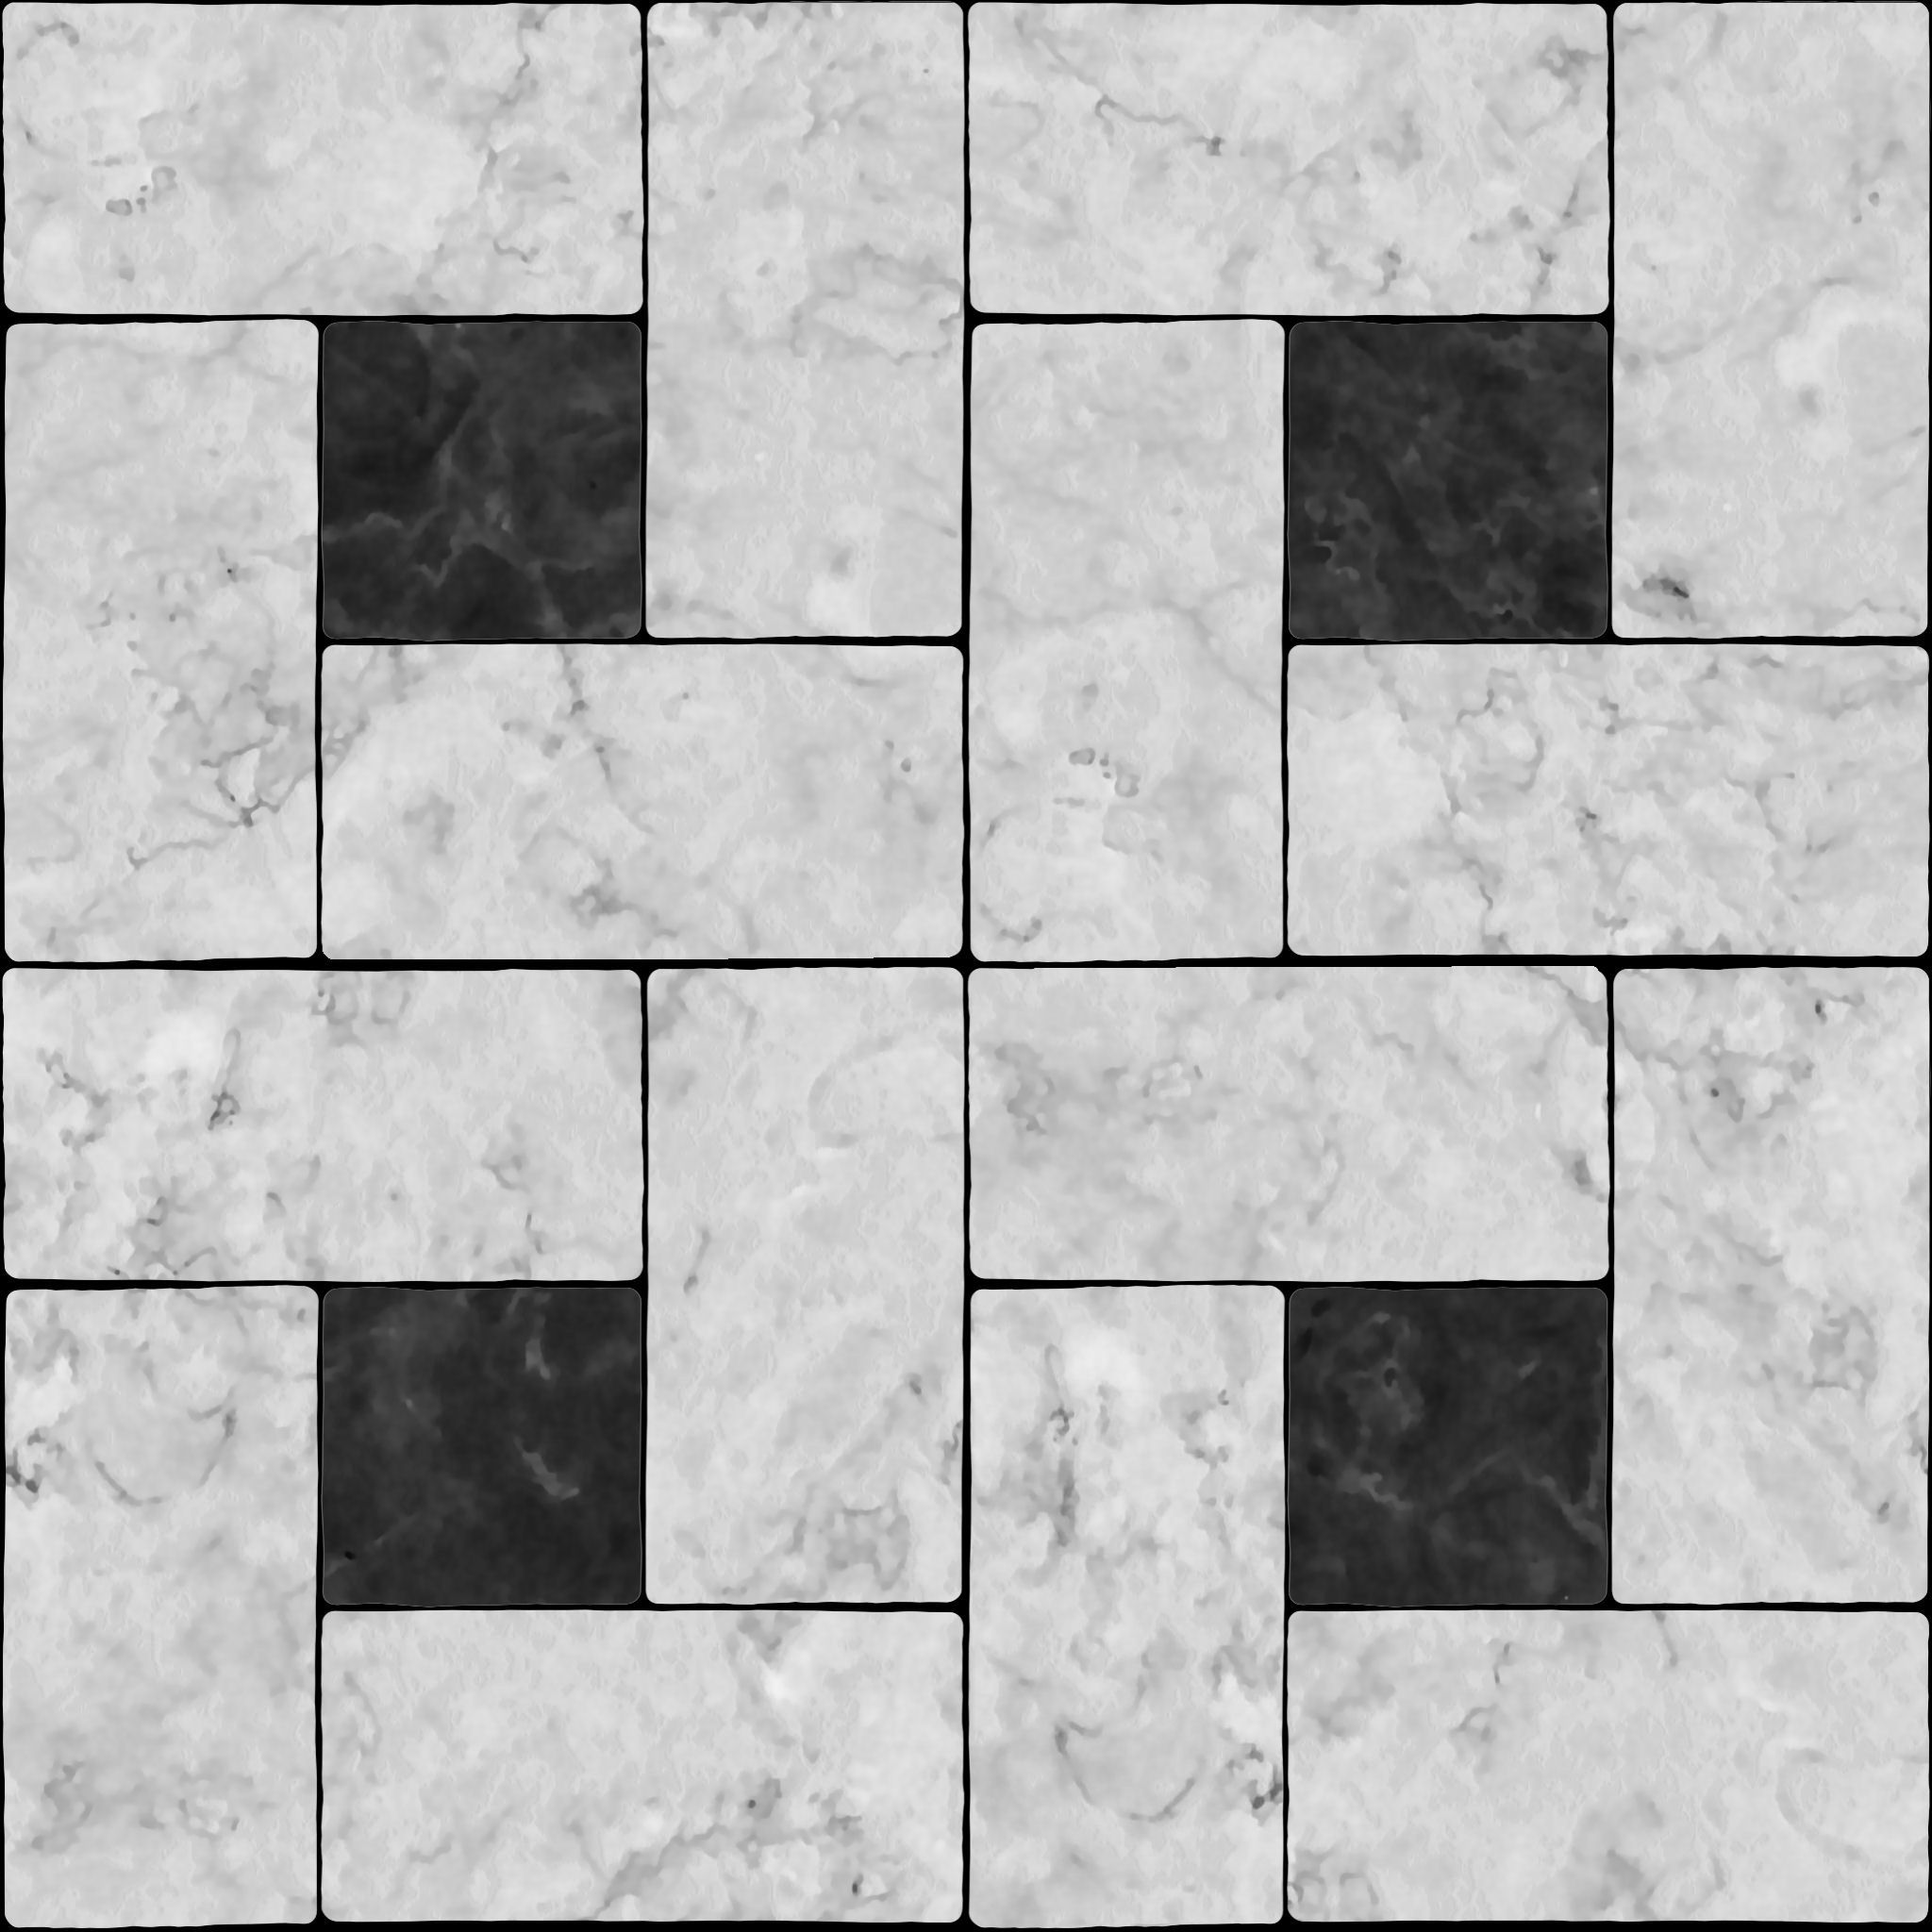 Image from http://www.trendsfloor.com/wp-content/uploads/2014/10/tile-flooring-patterns-mv6bcnhg.jpg.